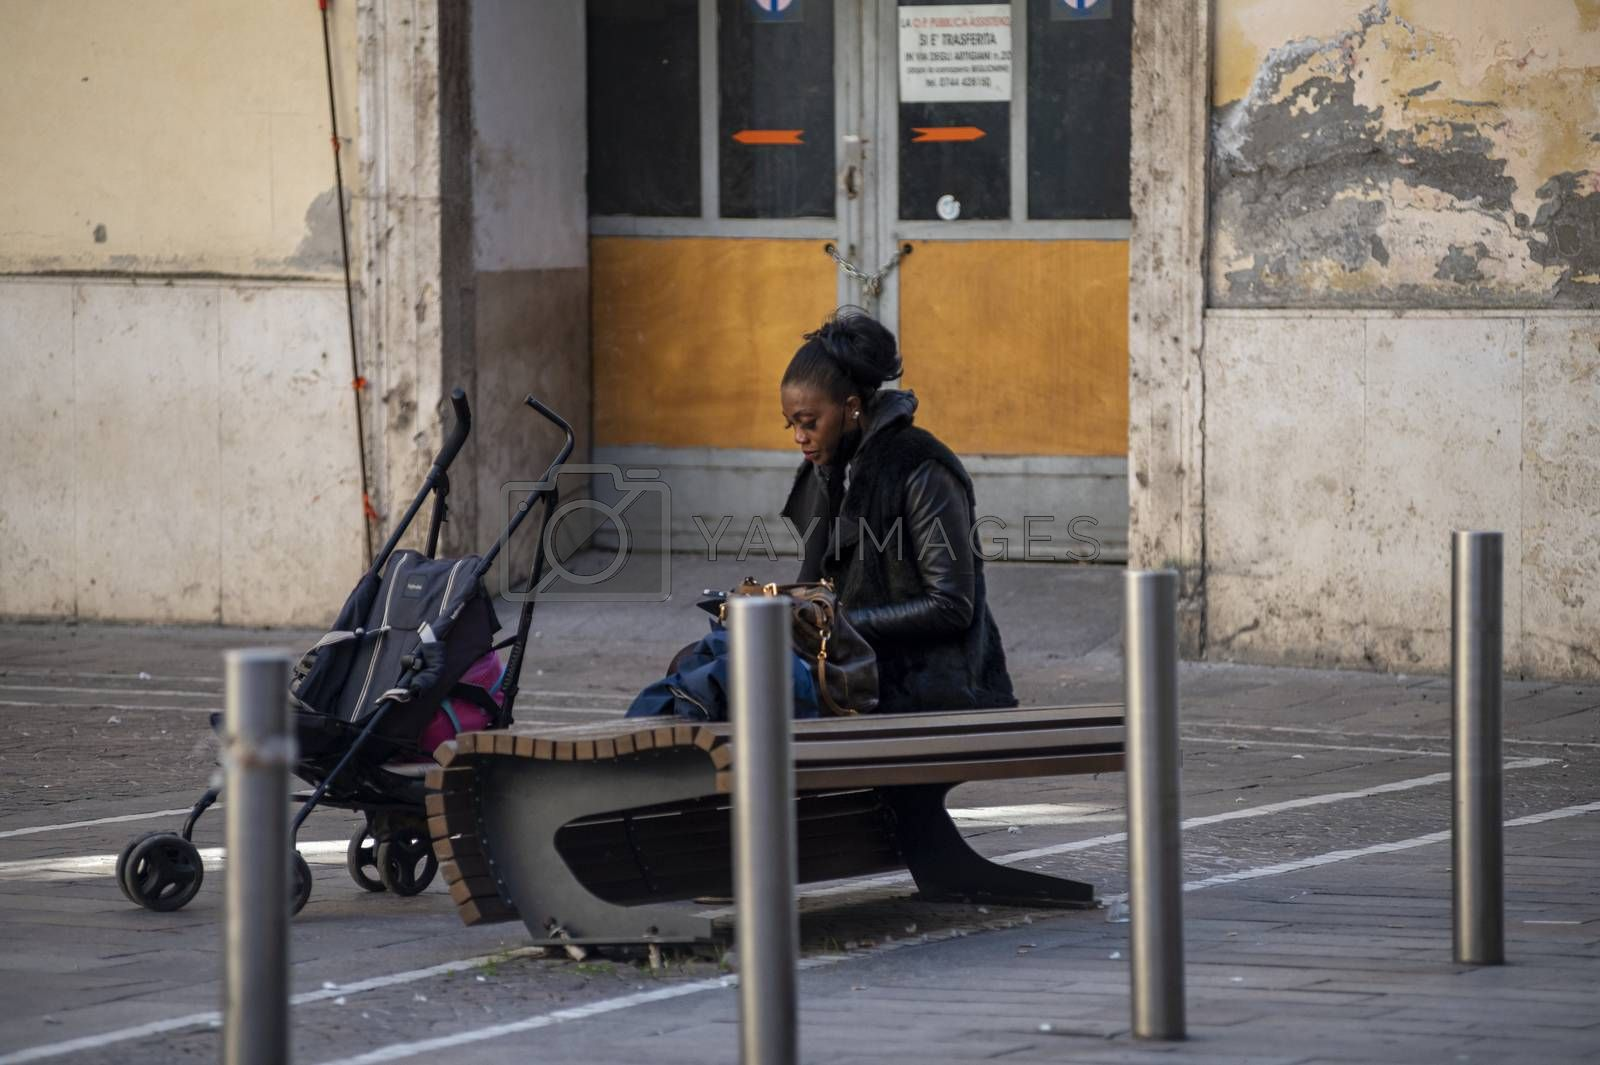 terni,italy october 21 2020:black woman sitting on a bench with a small stroller